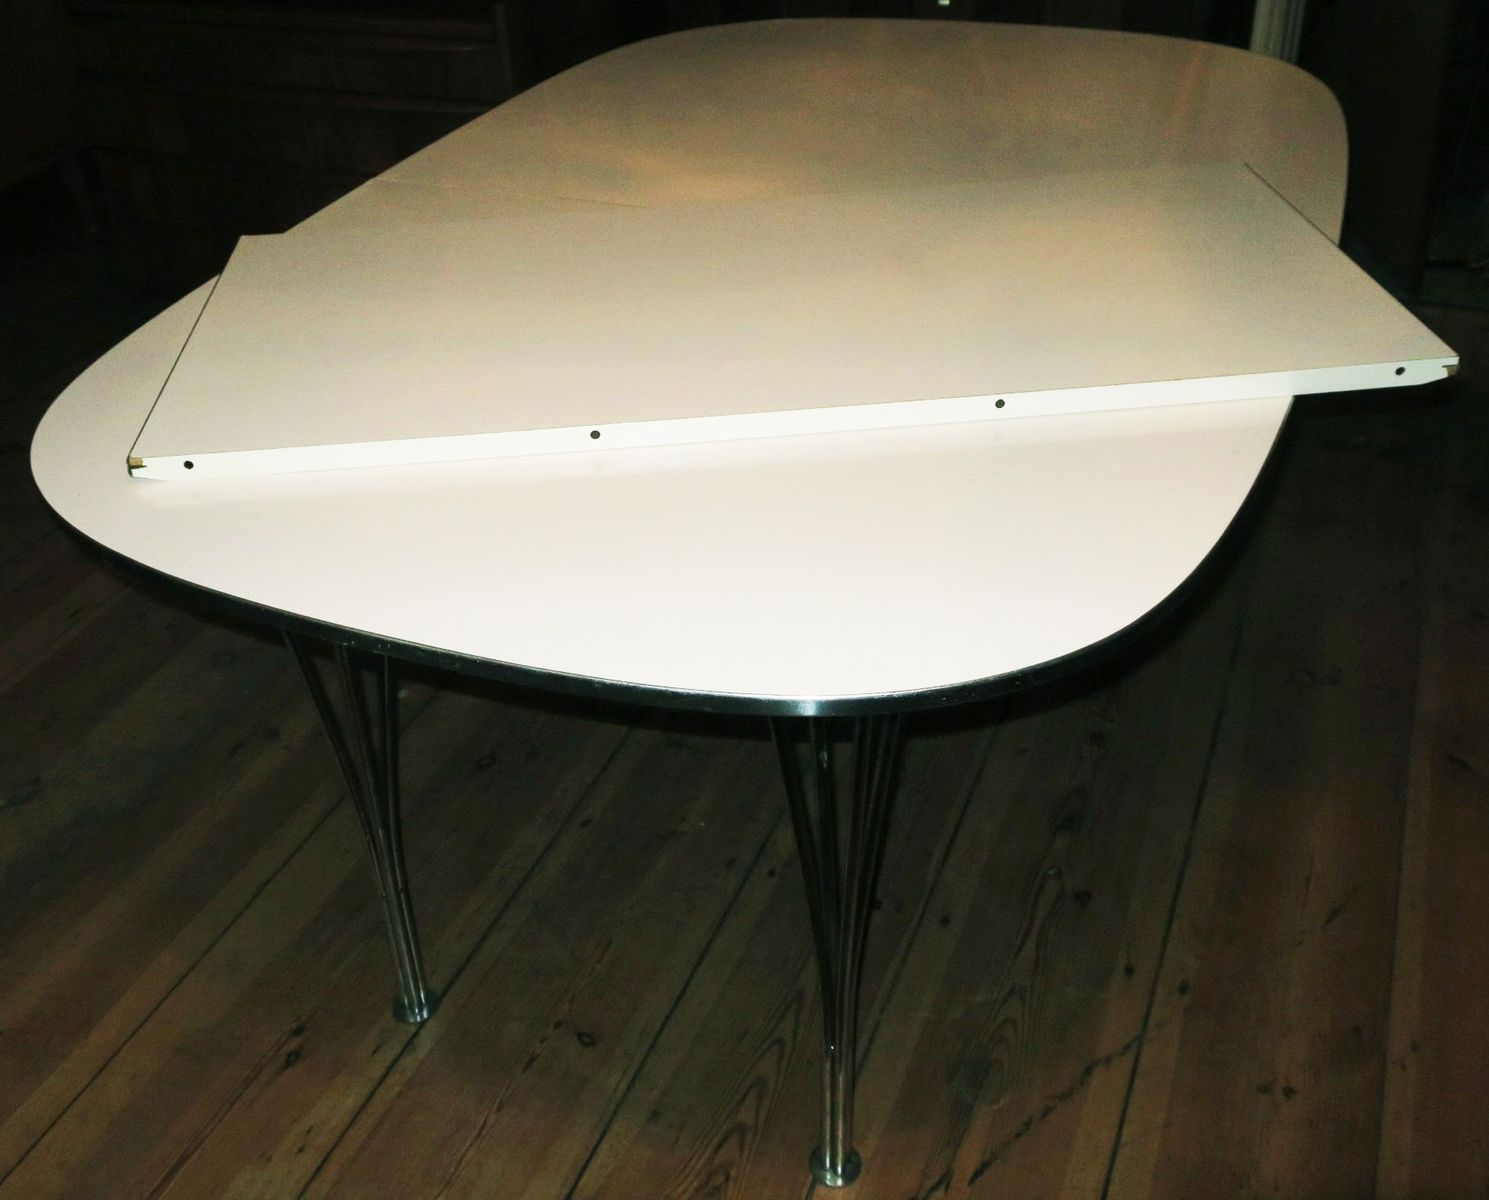 elliptical danish extendable table with hairpin legs